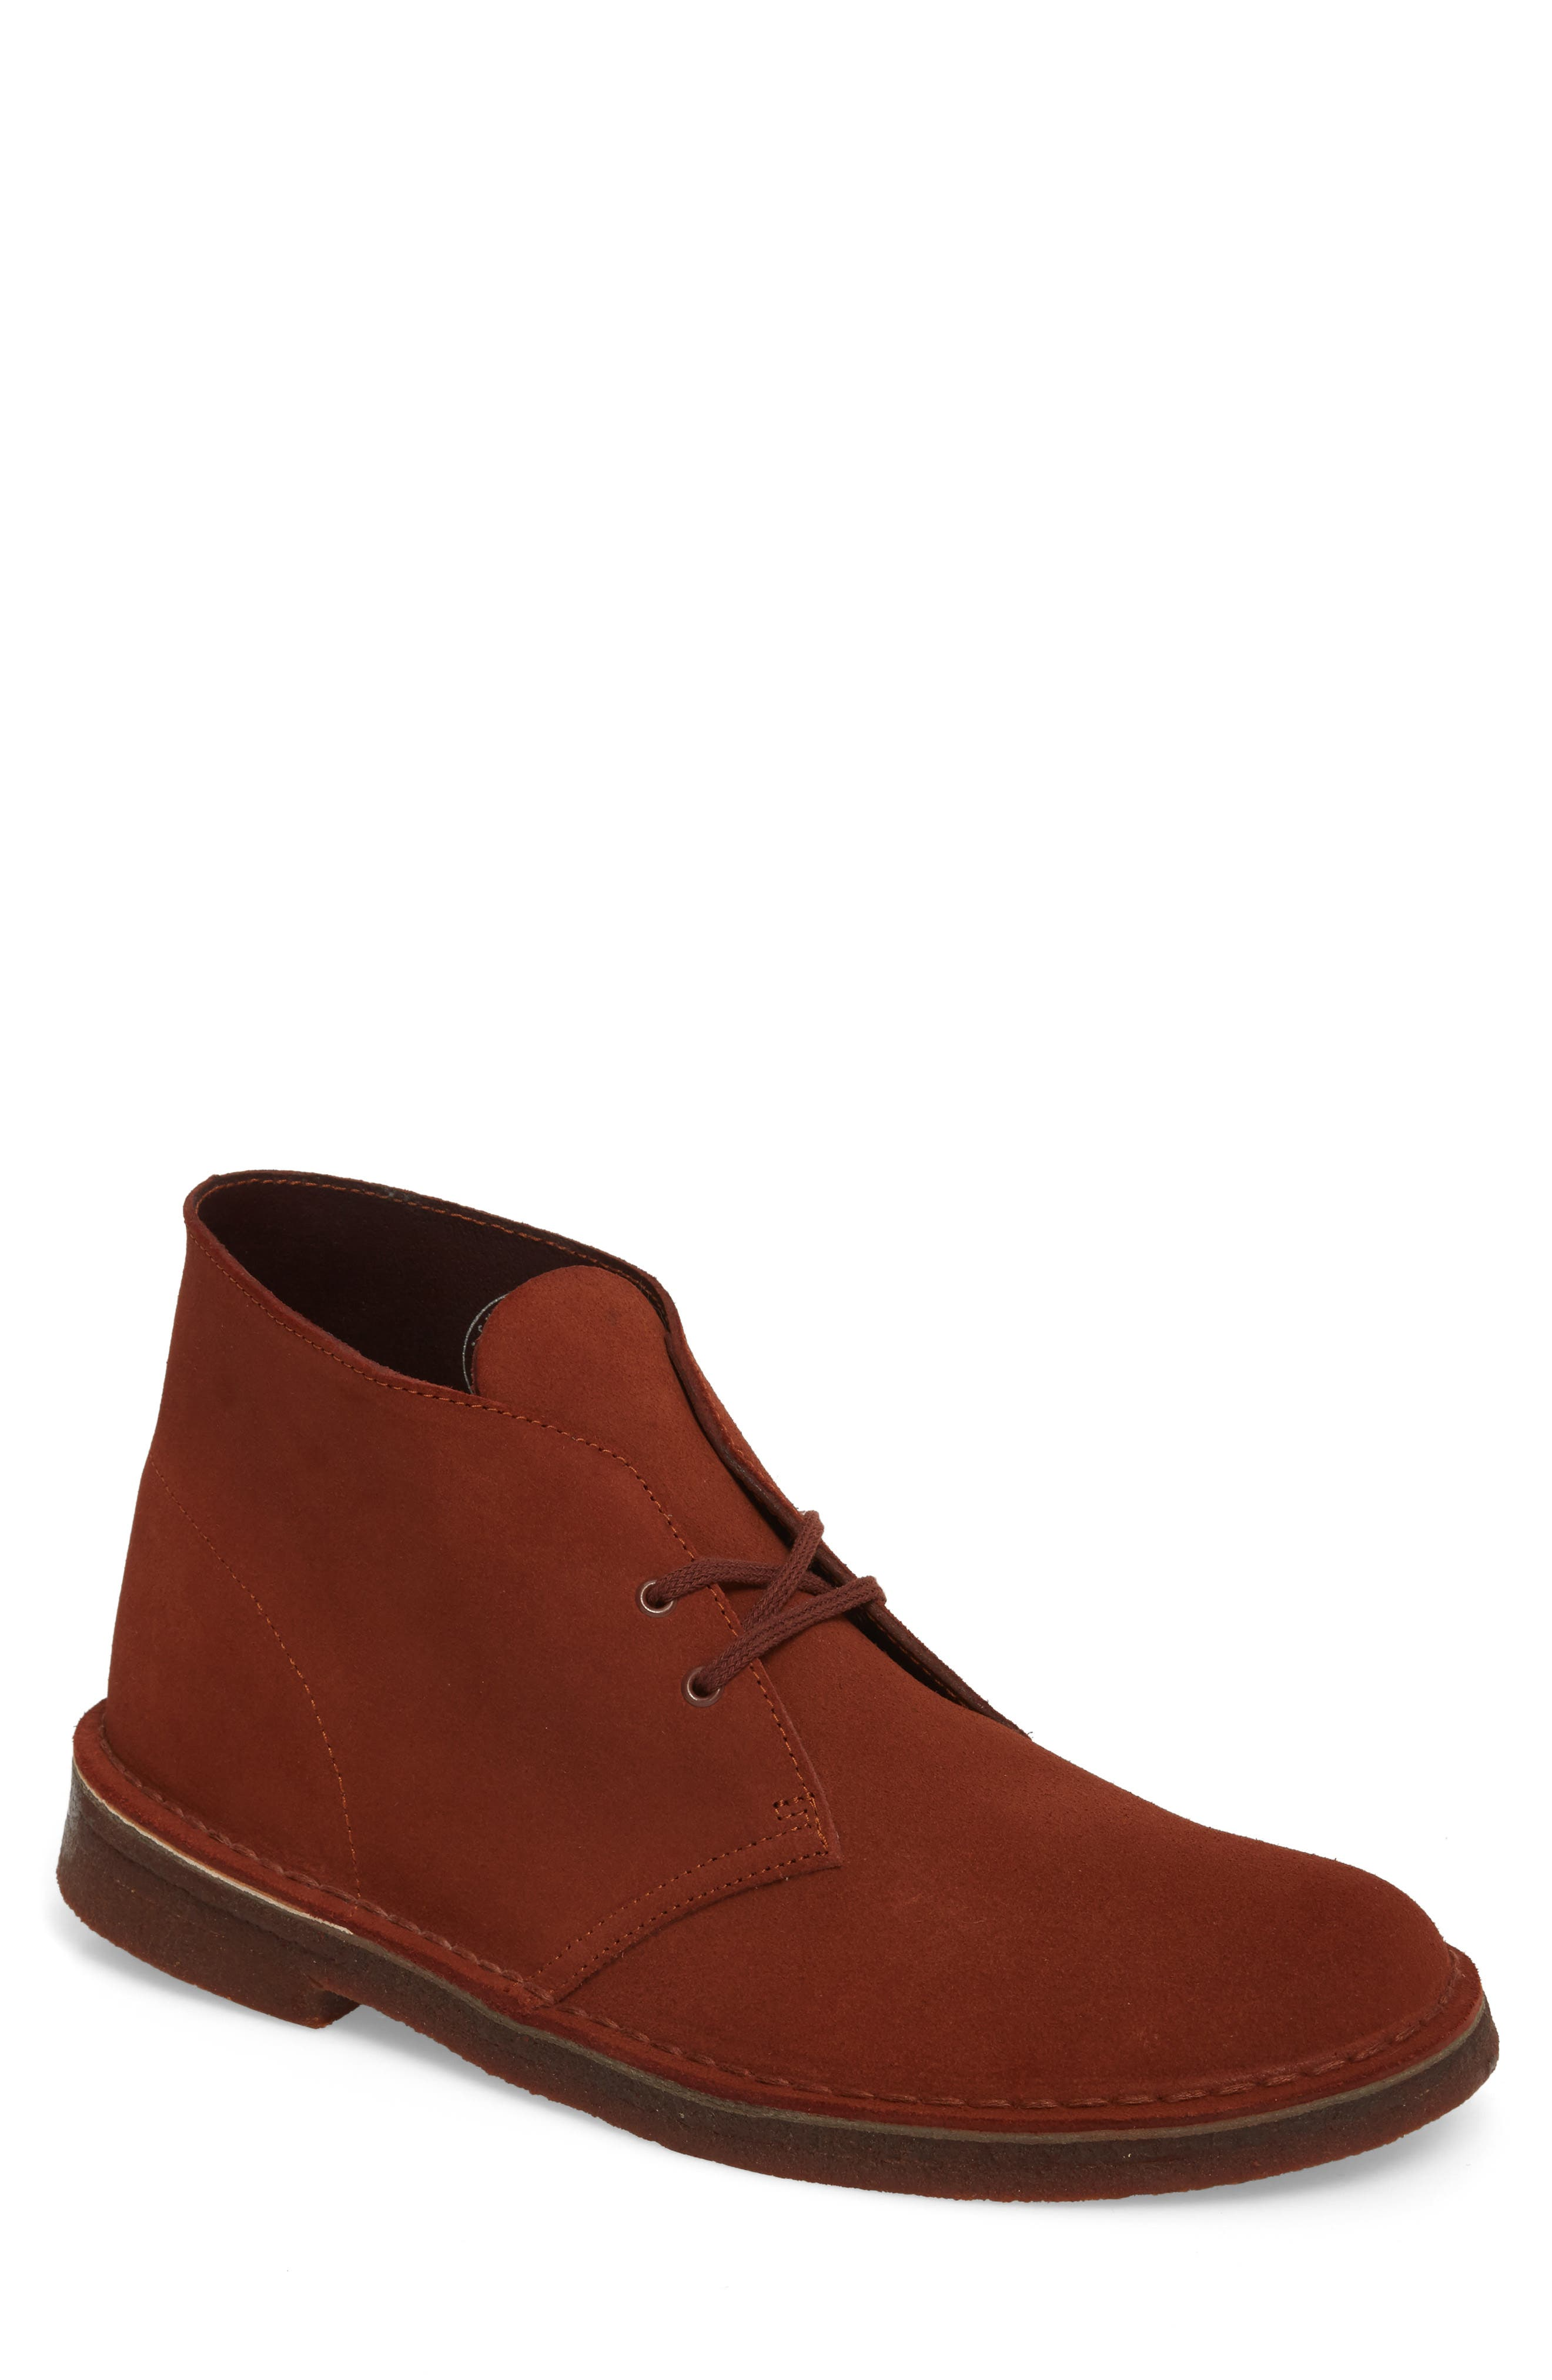 Clarks<sup>®</sup> Desert Boot,                         Main,                         color, Mahogany Leather